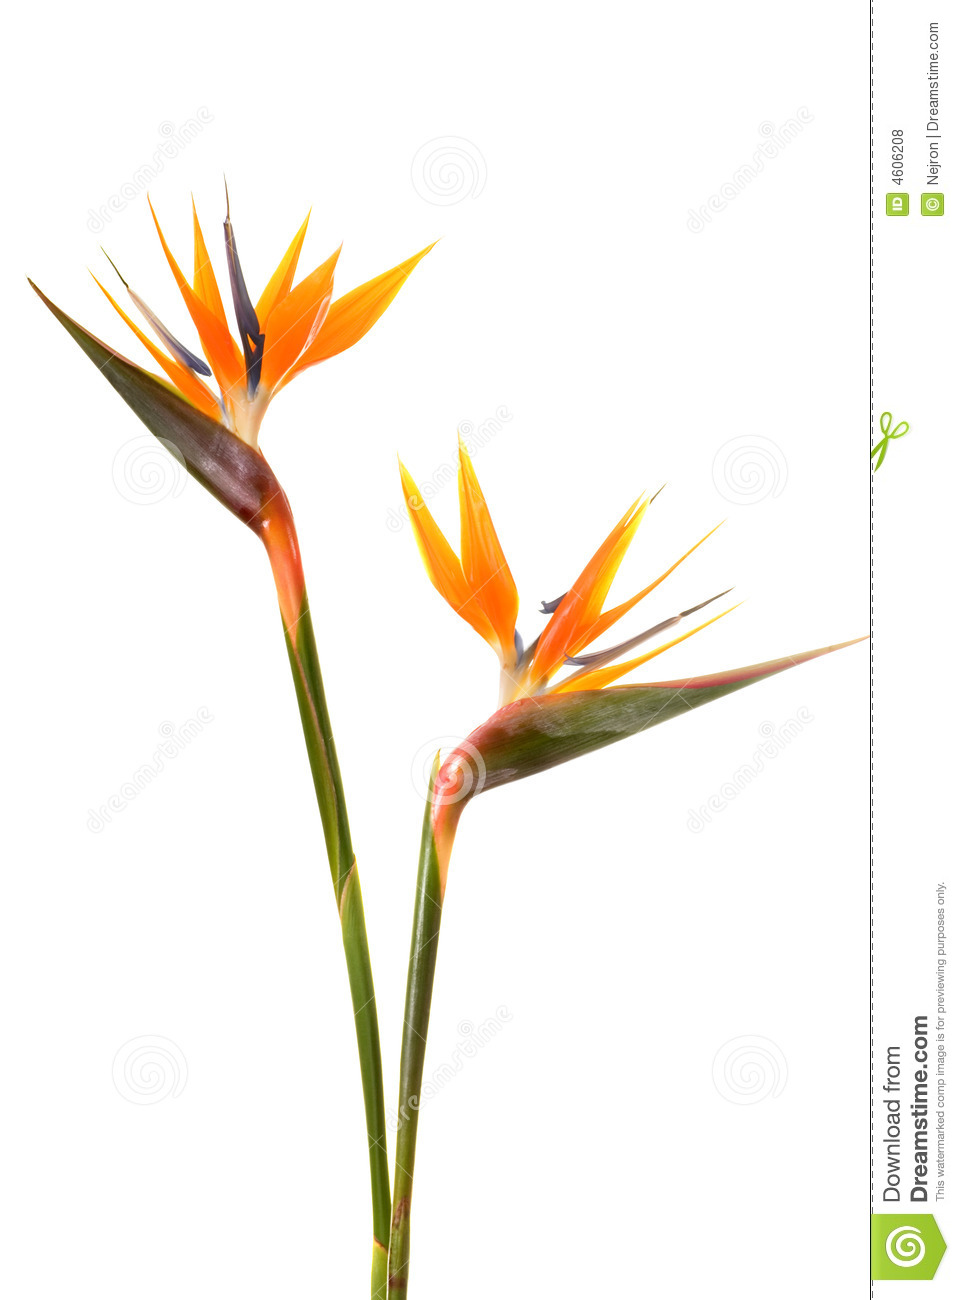 birds of paradise flower drawing at getdrawings com free for